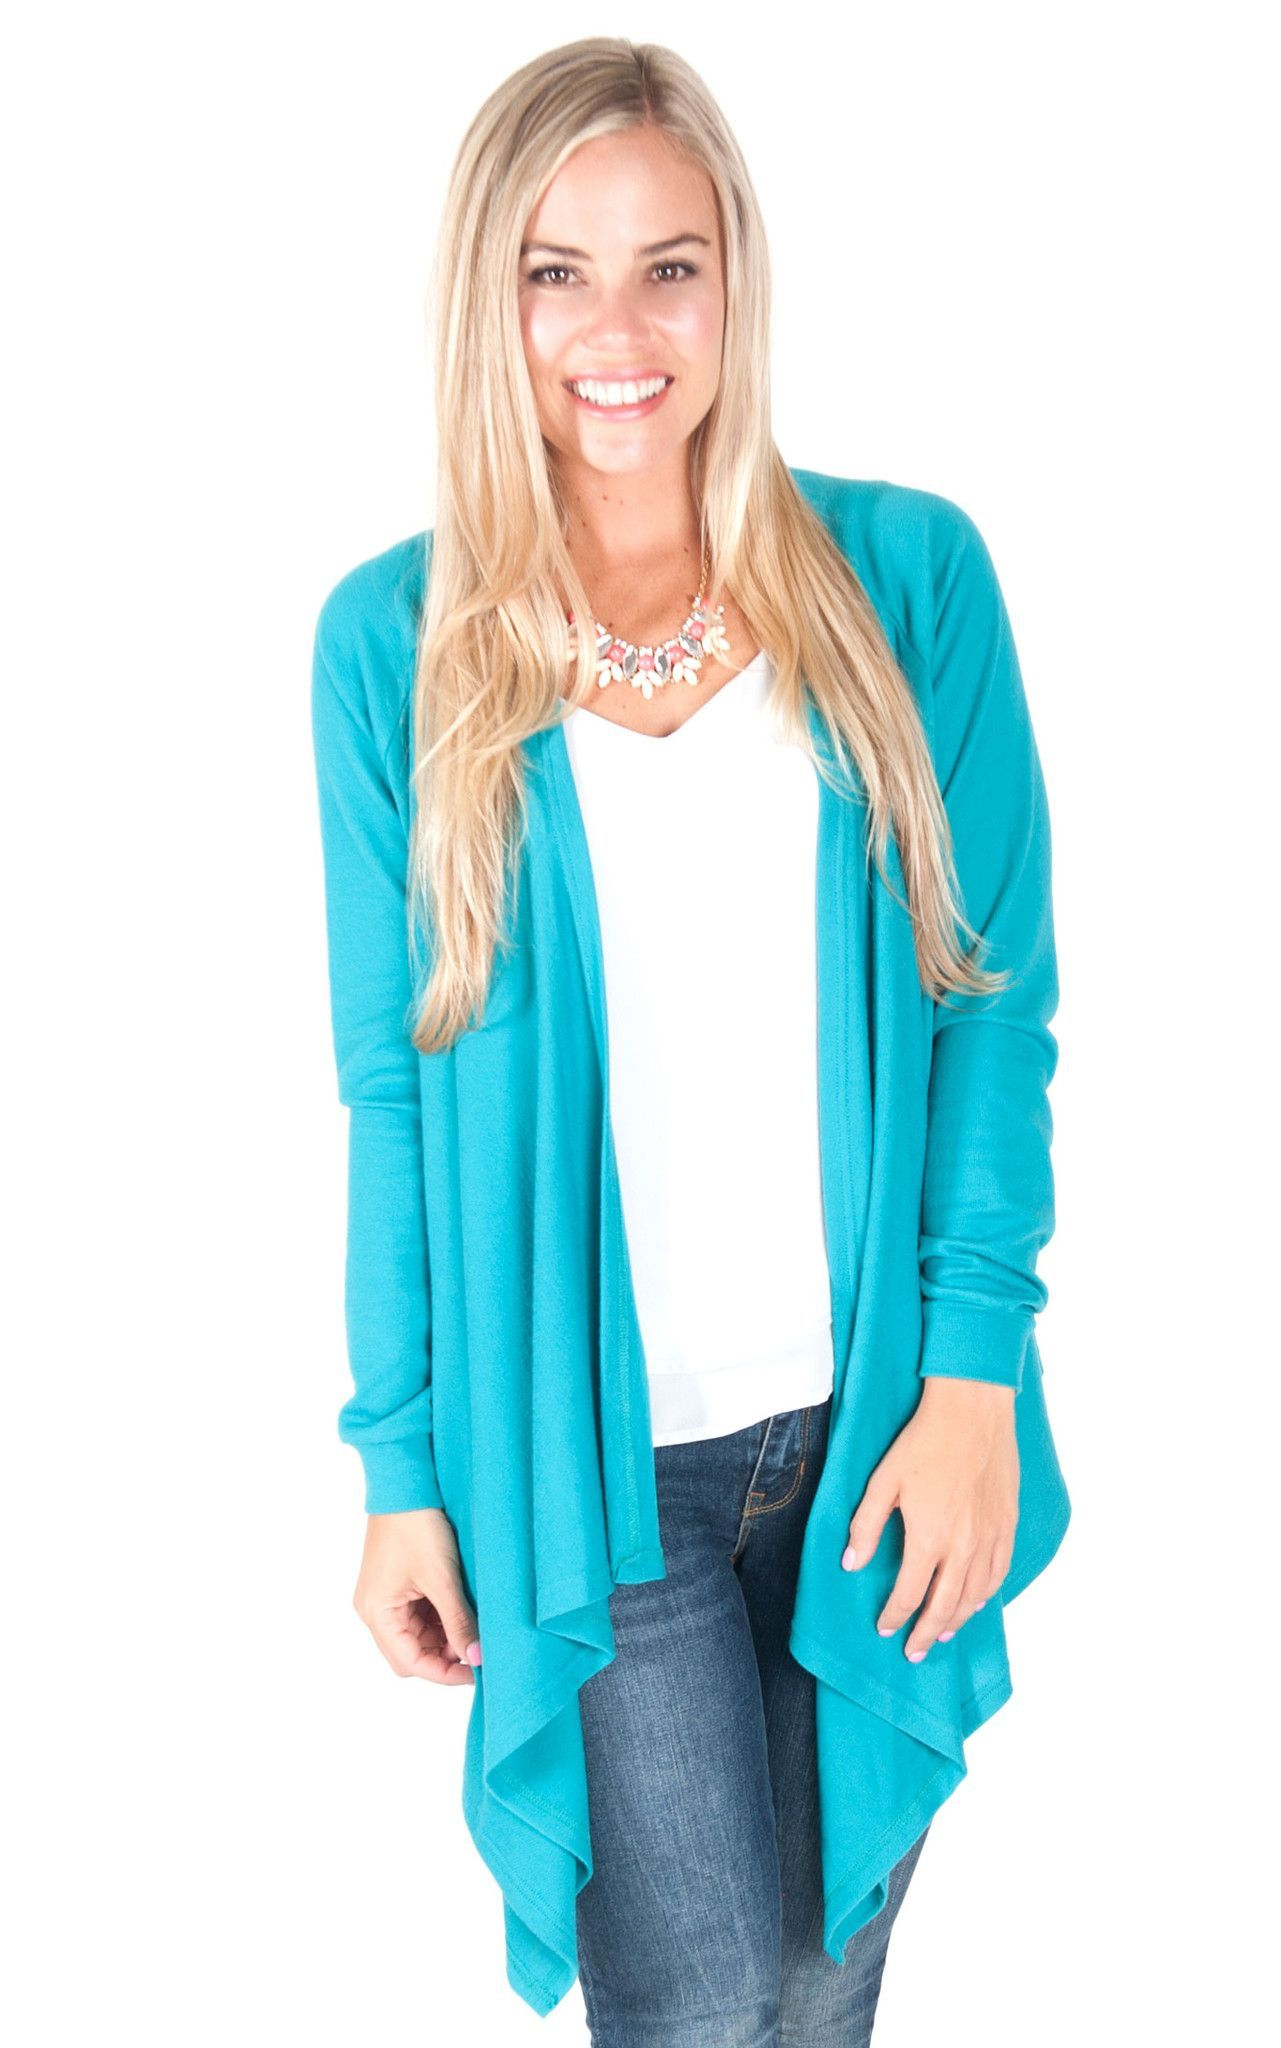 Turquoise Claire Waterfall Sweater | Products, Sweaters and Turquoise